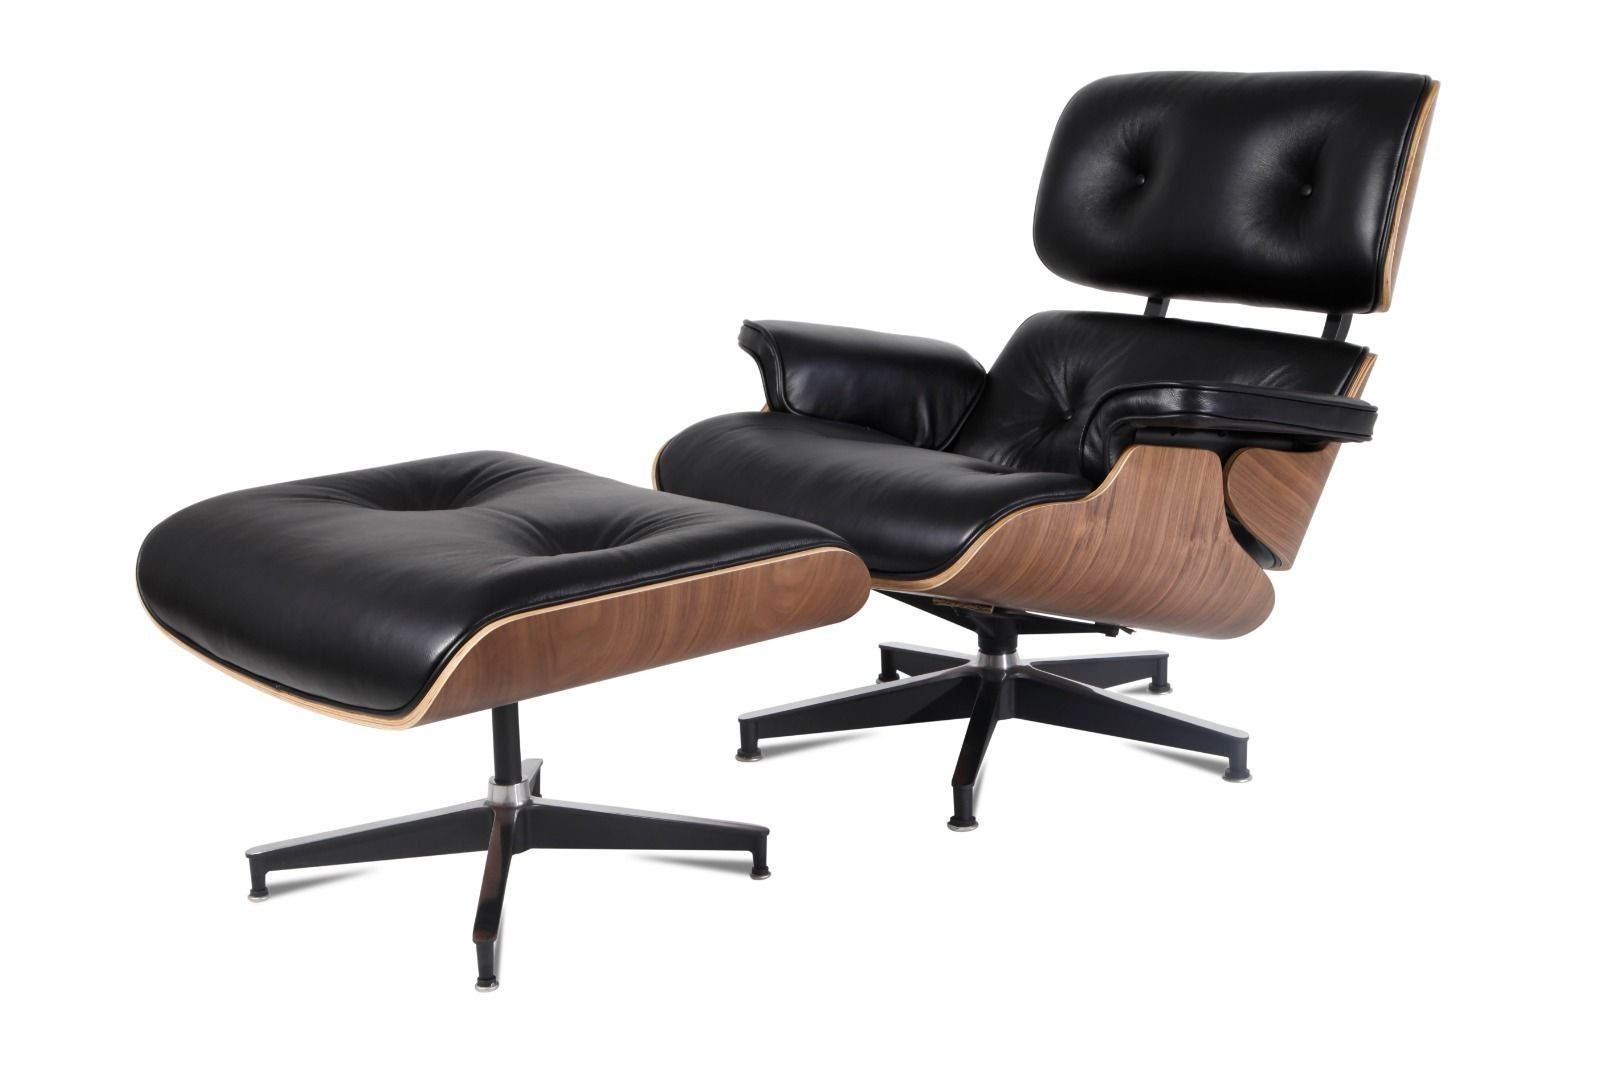 Eames Style Lounge Chair and Ottoman Palisander Plywood